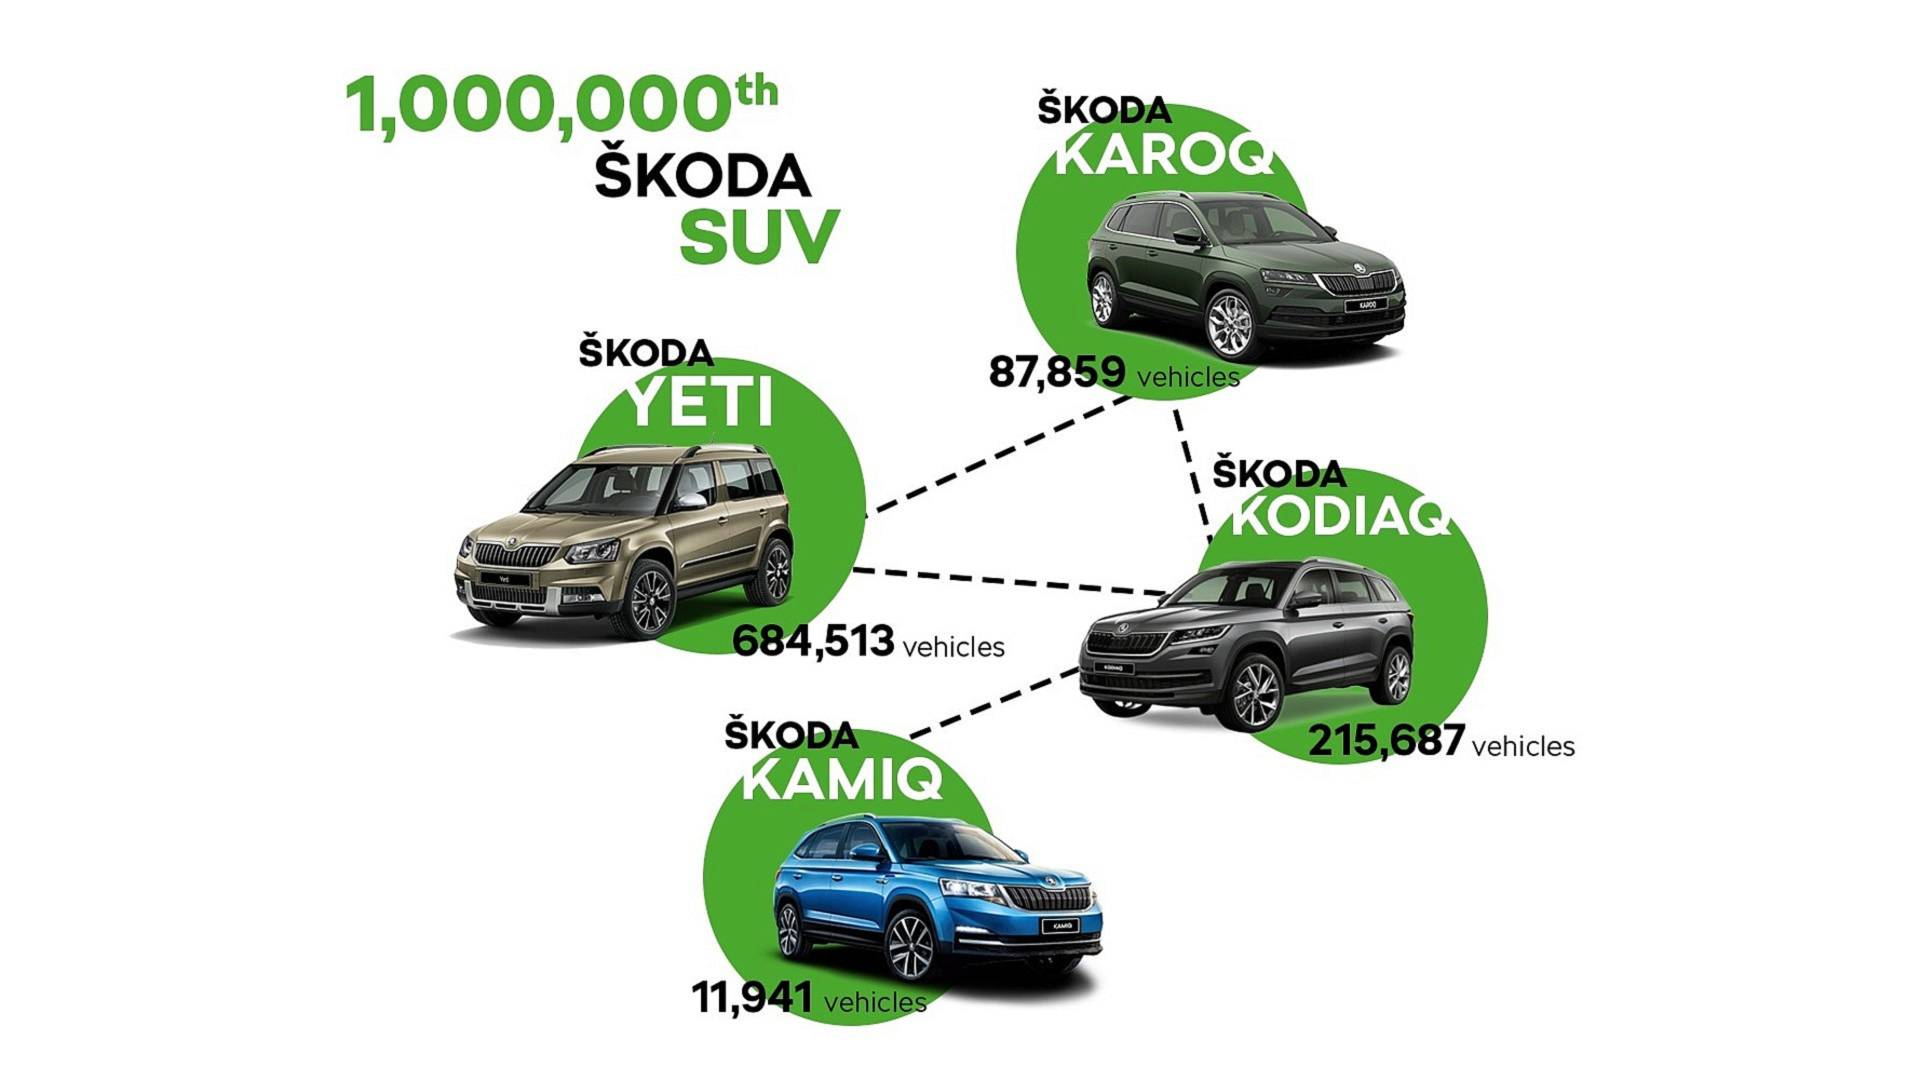 skoda-builds-one-millionth-suv (5)